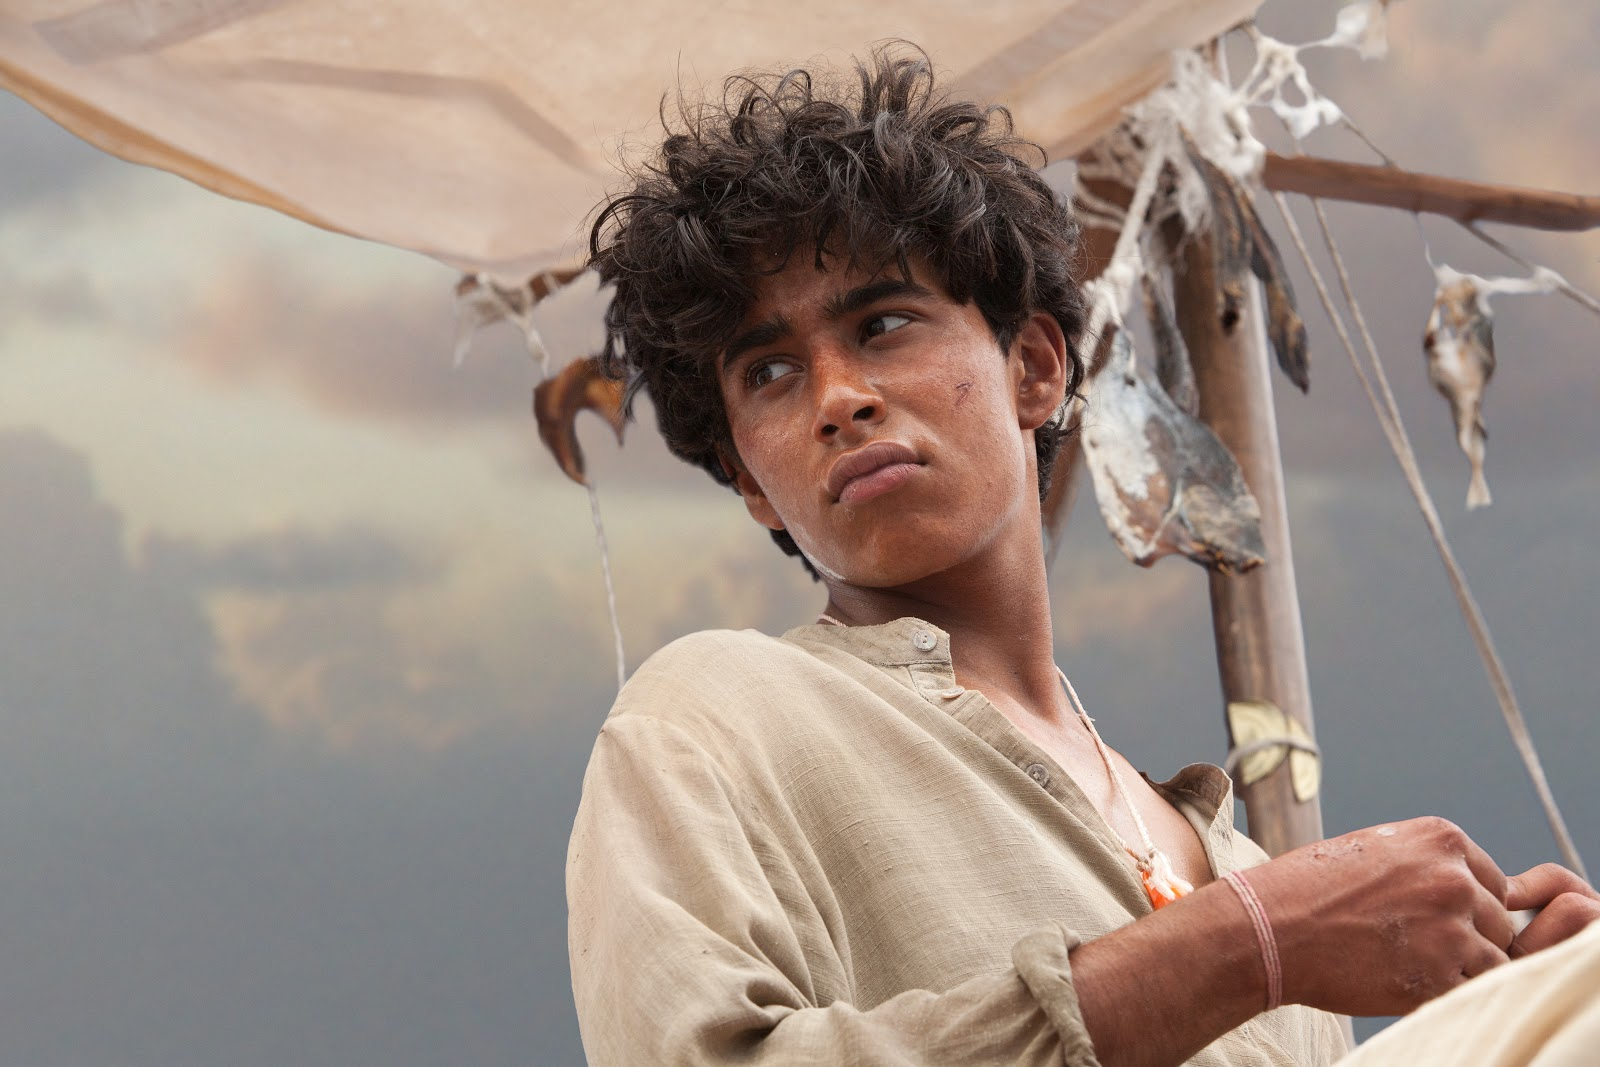 Exclusive 39 life of pi 39 behind the scenes photos images for Life of pi patel